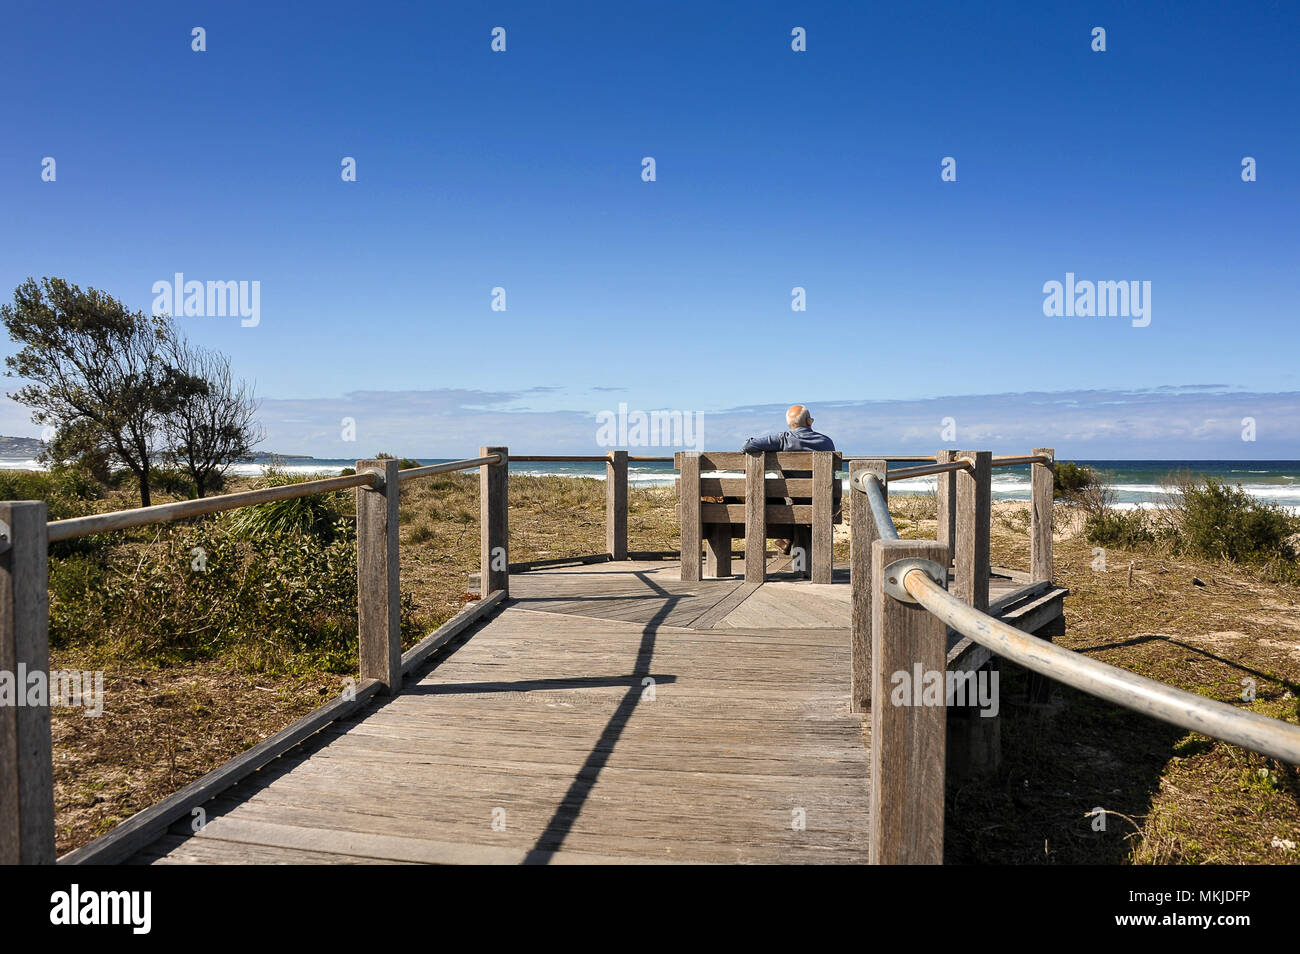 Man relaxes on wooden bench, watching the waves along Seven Mile Beach, Australia. Coastal scene, wooden boardwalk, grassy dunes and blue sky - Stock Image